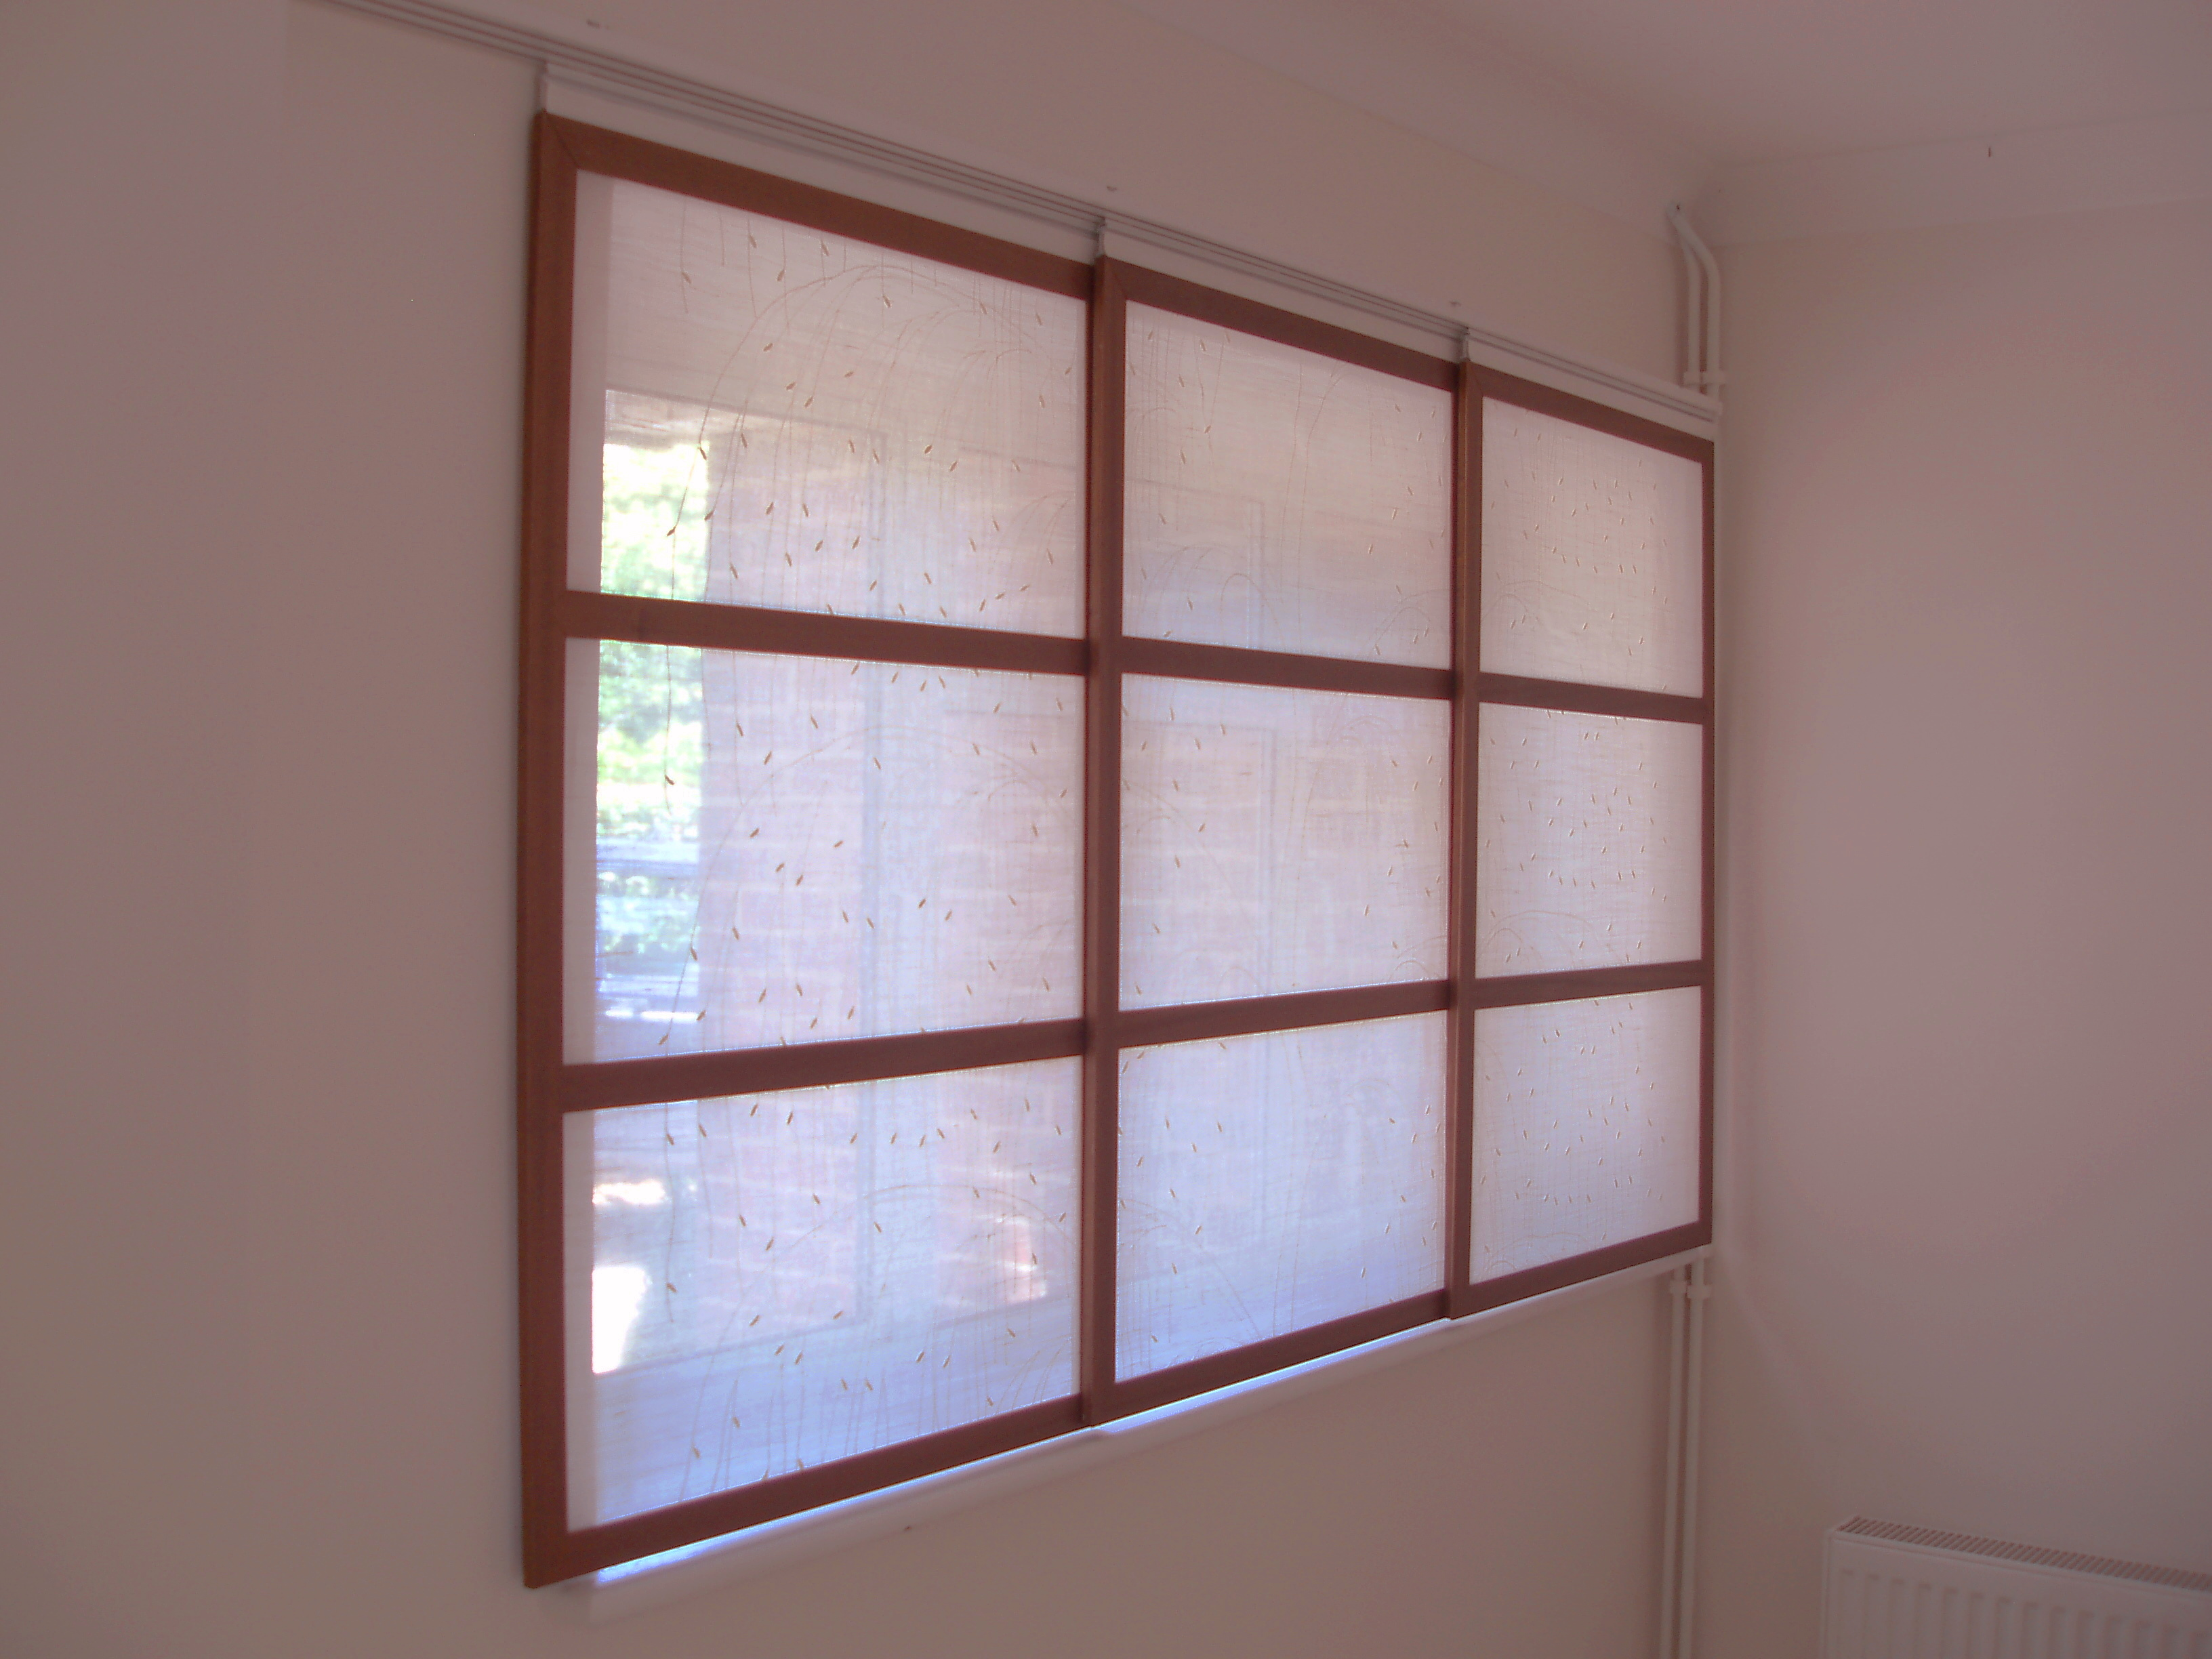 Japanese shoji panel blinds room dividers window blinds for Asian window coverings